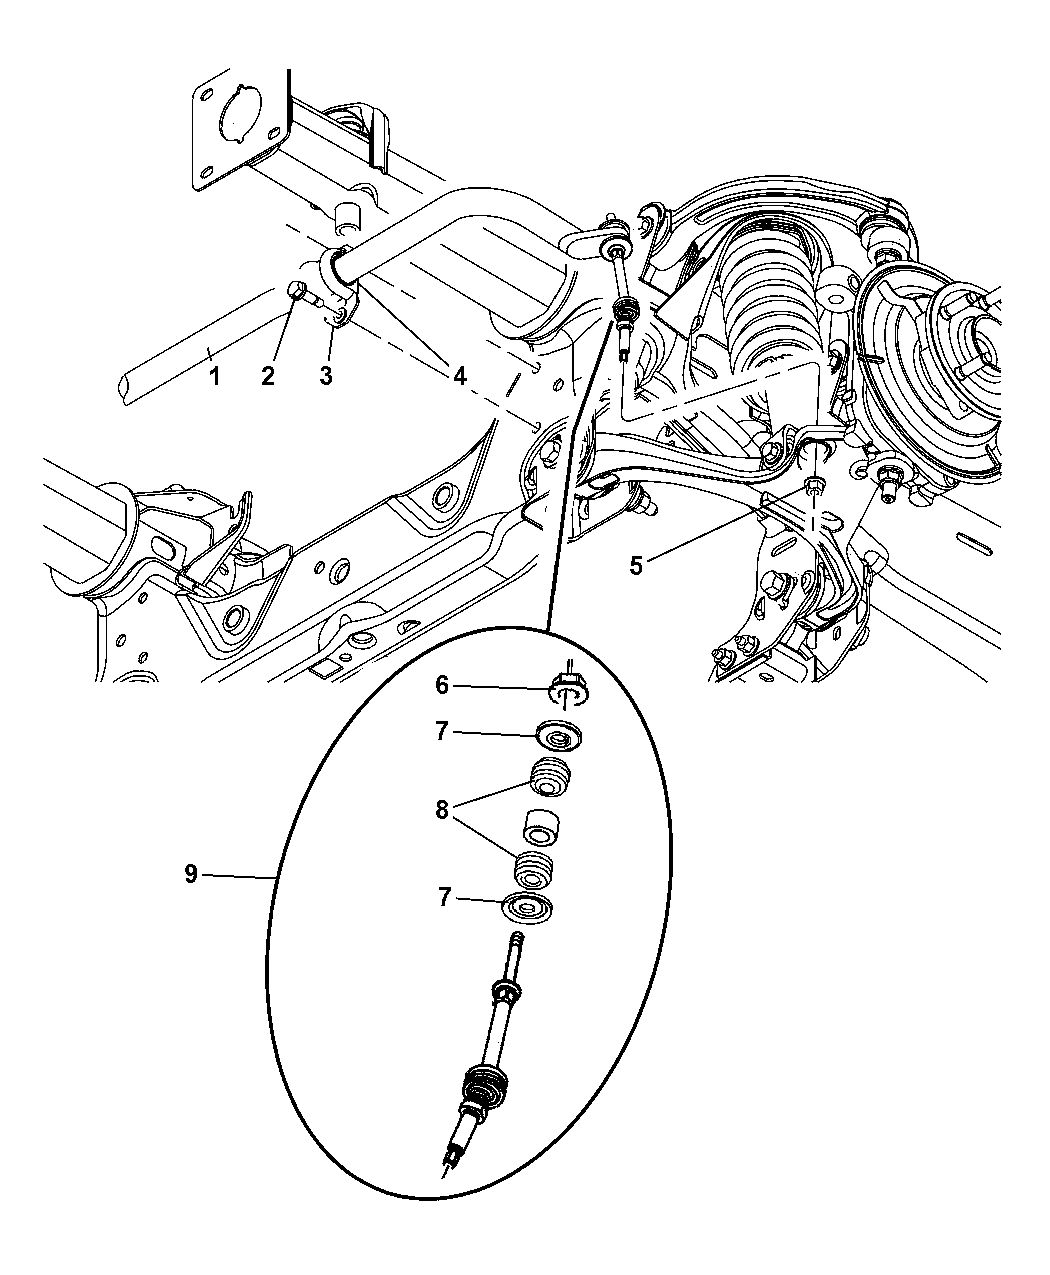 dodge dakota front suspension diagram